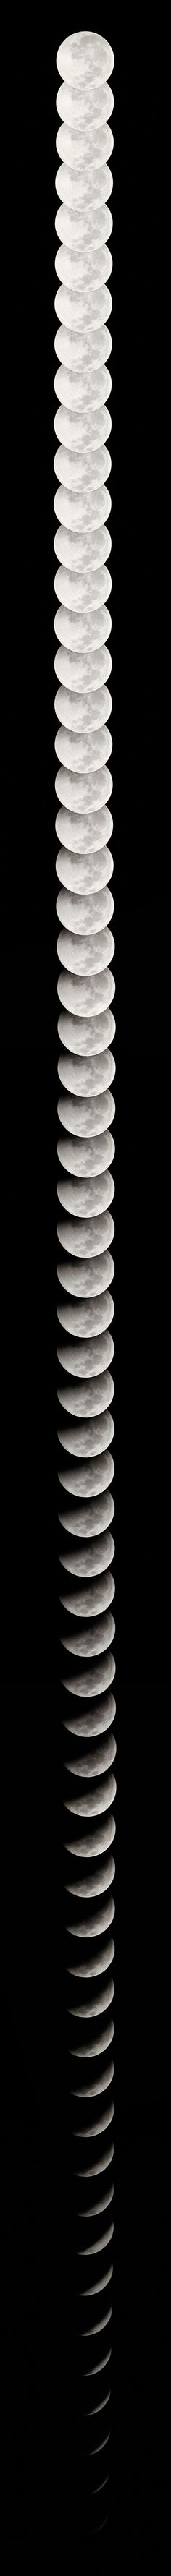 Lunar Eclipse 2010, via Daily Dose of Imagery---tooooo sweet!